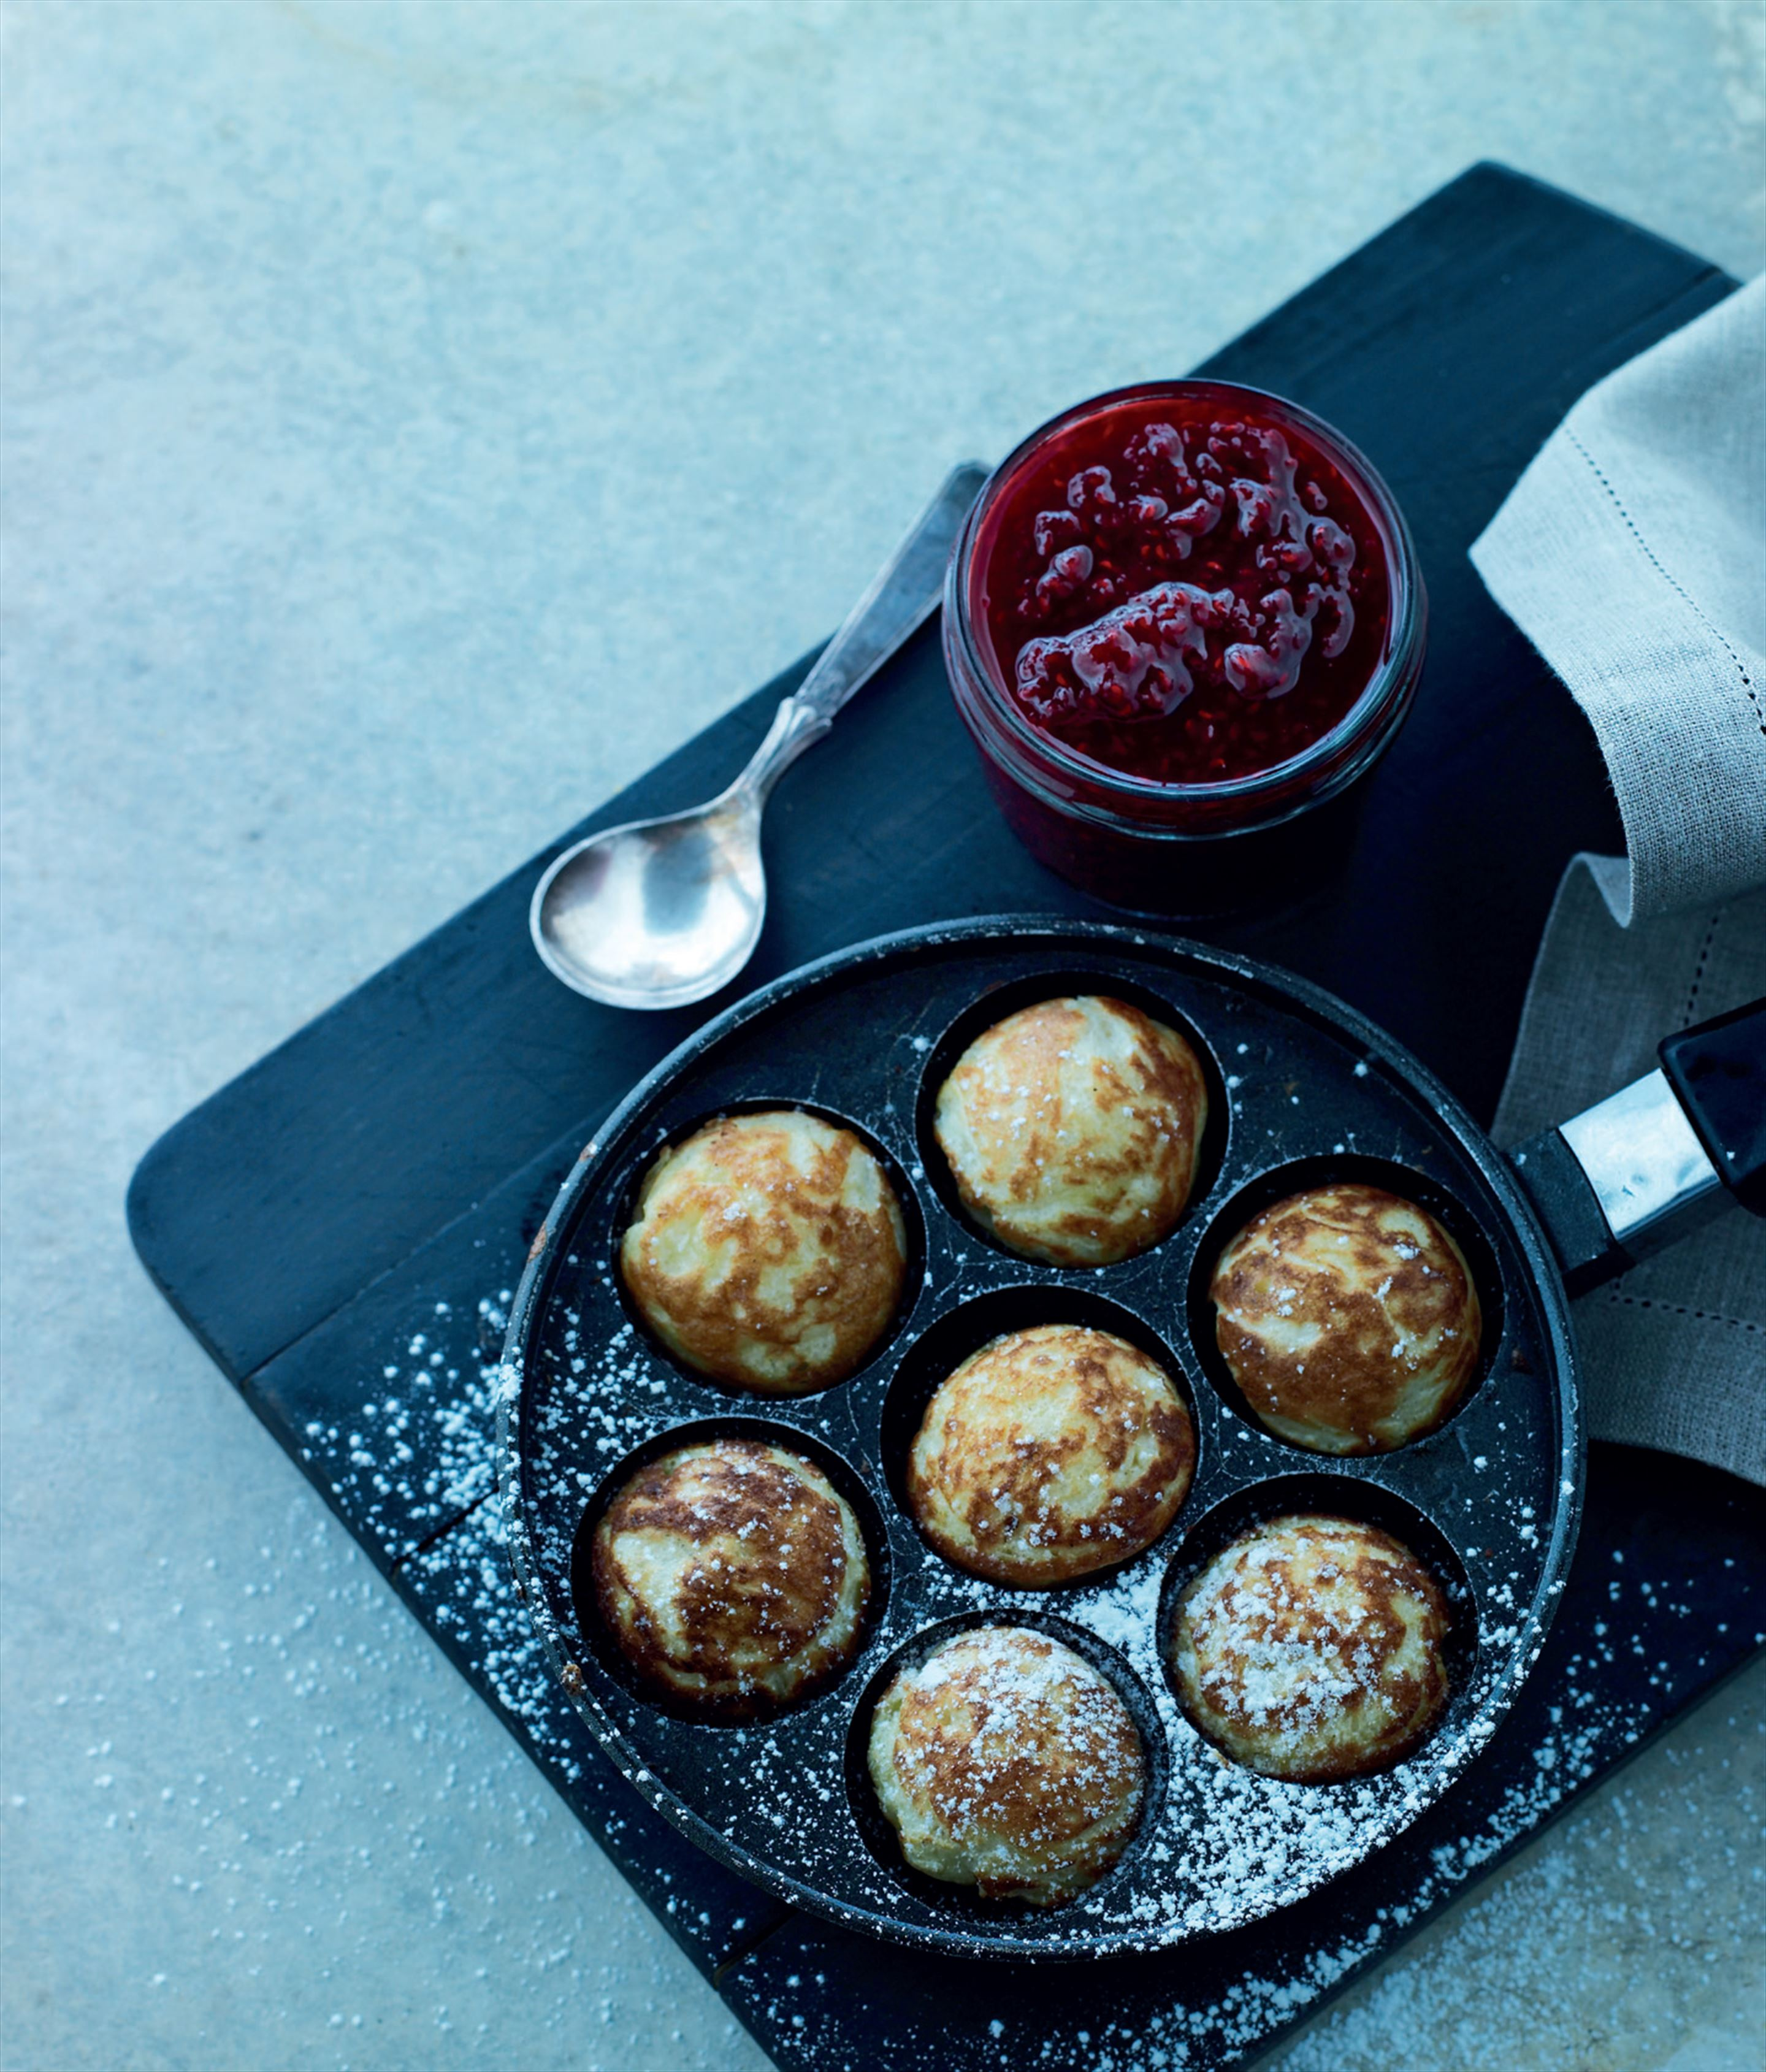 Apple æbleskiver